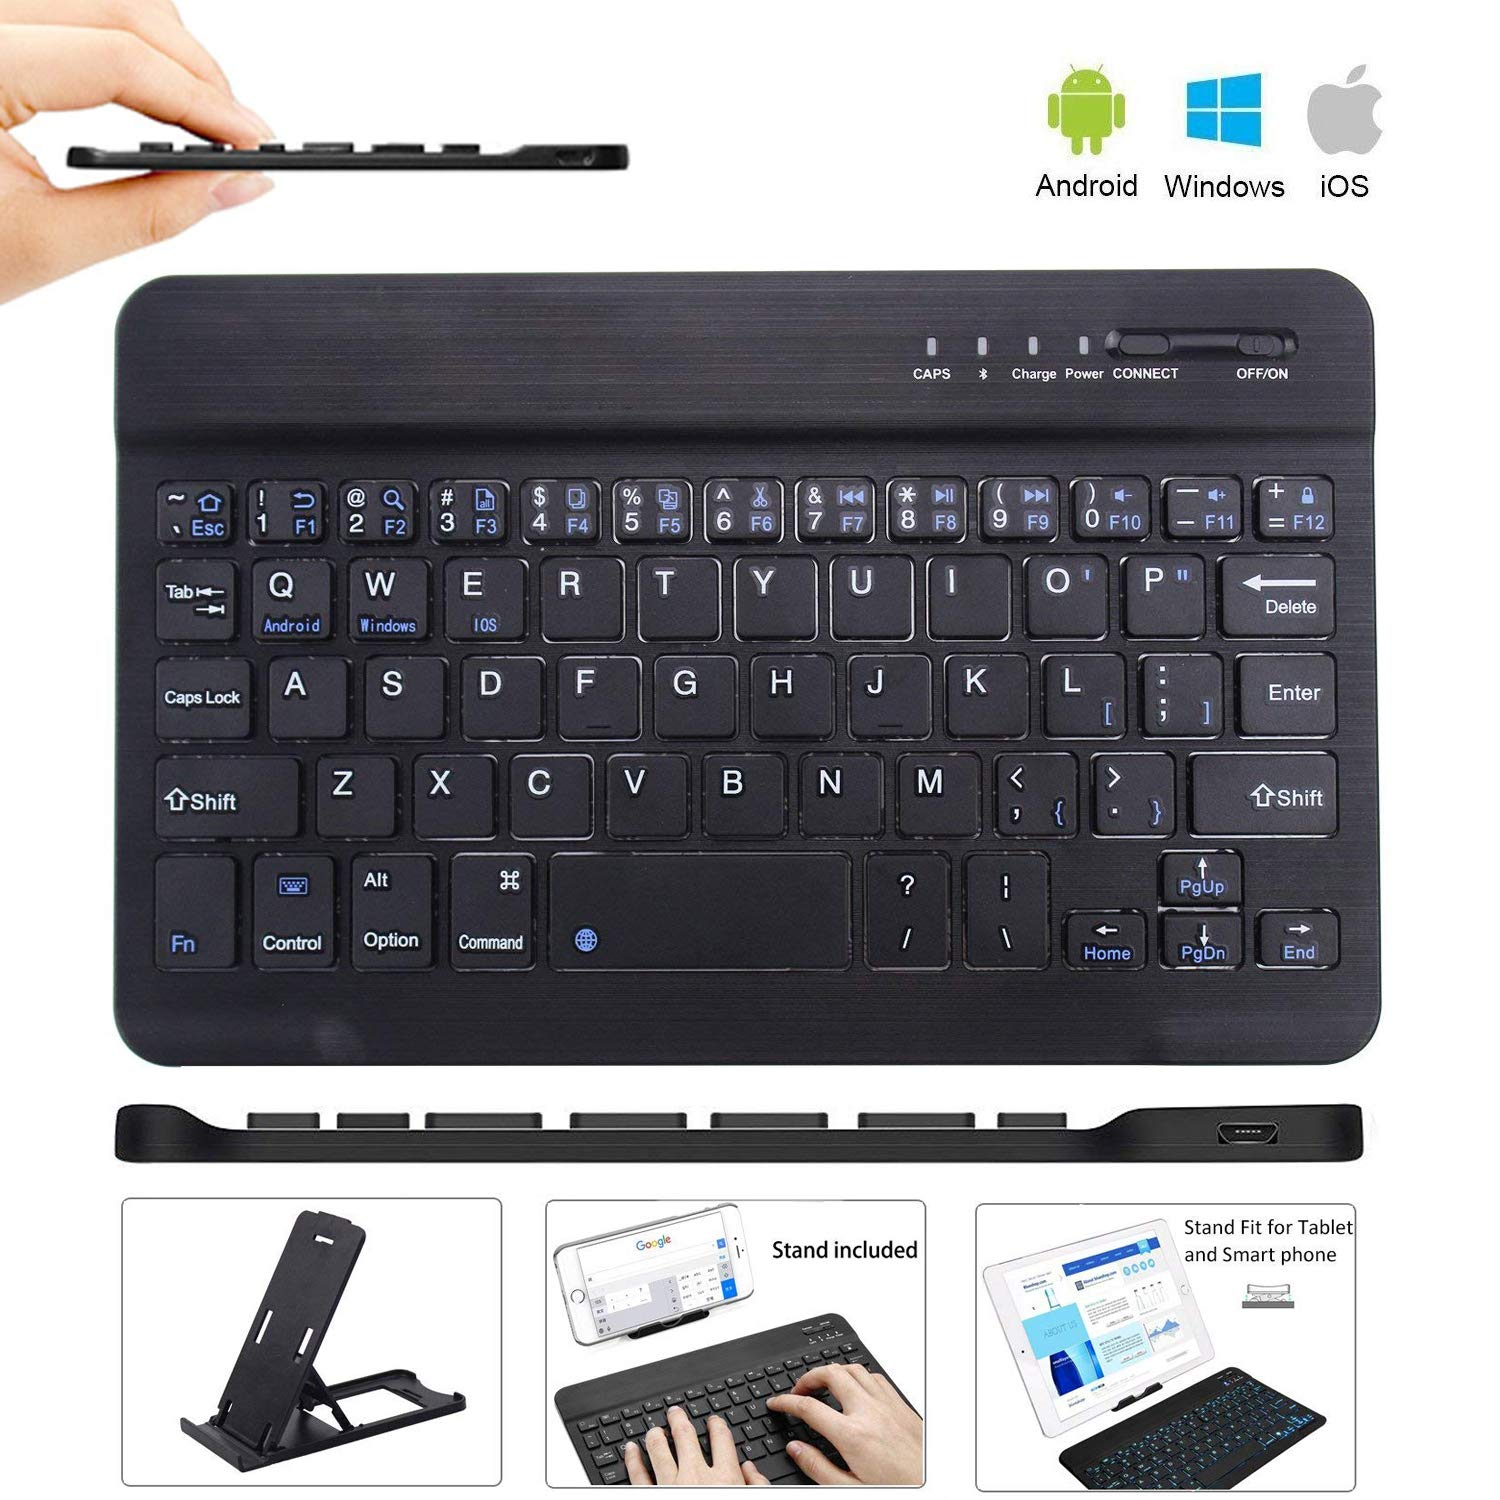 Ultra Slim Wireless Keyboard Ultrathin Wireless Bluetooth Keyboard 7 inch Bluetooth 3.0 Keyboard in Rechargeable Battery for iPad/Apple/Samsung/Acer/Asus/Lenovo/LG Tablet with Windows/Android/iOS by Freal